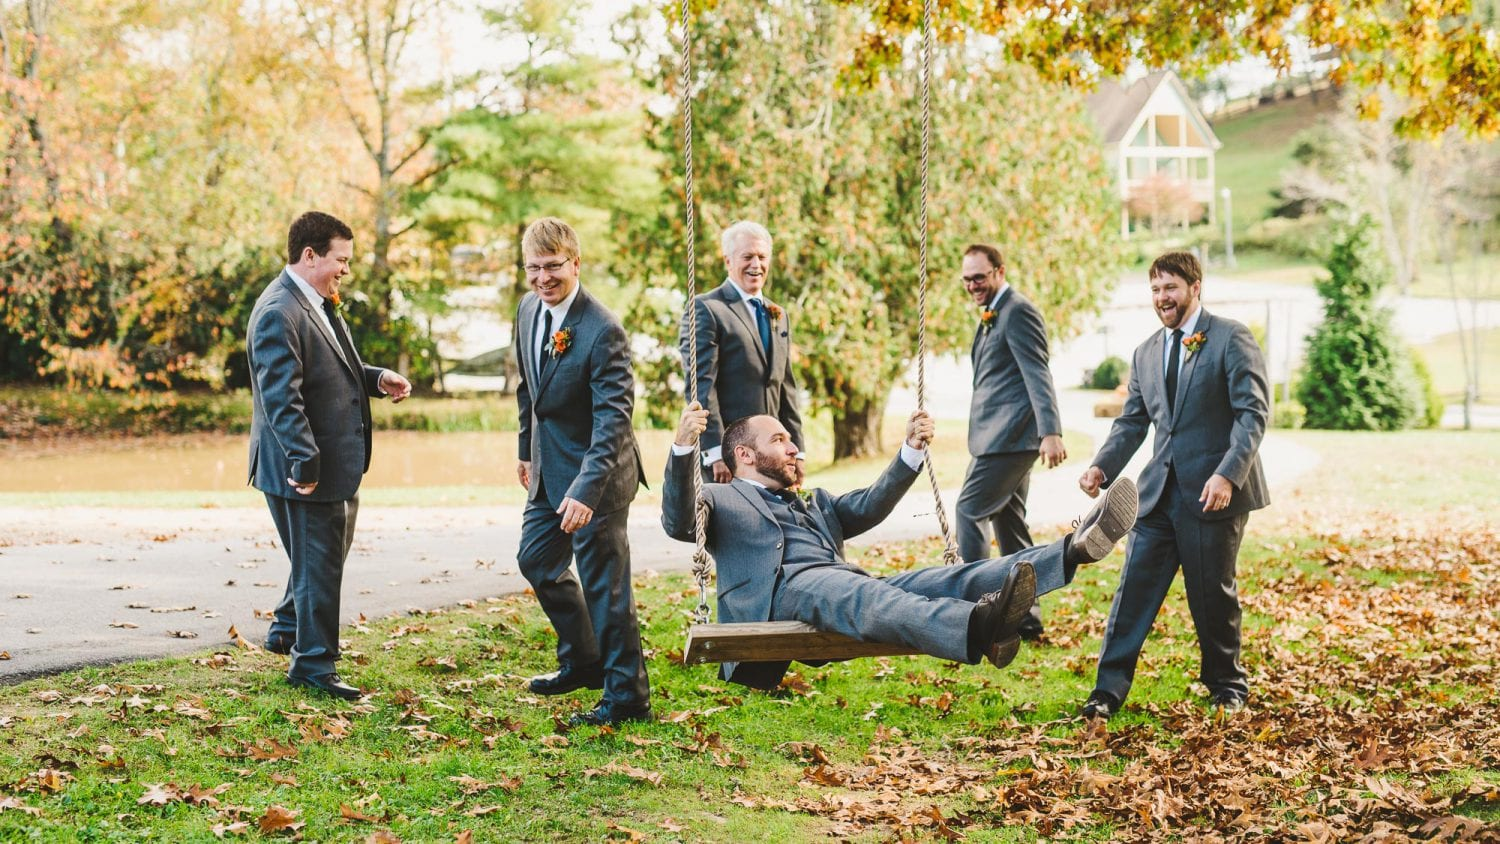 Swings in wedding photos